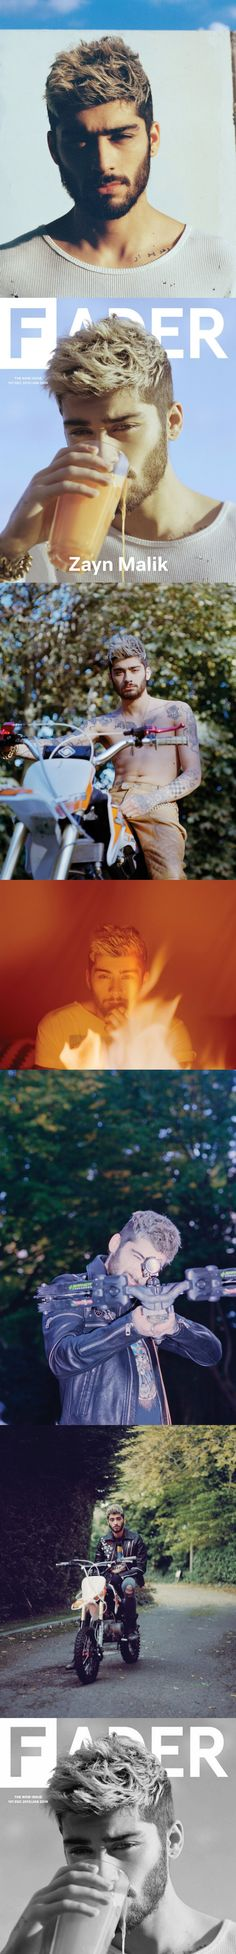 Zayn Malik's very first interview after his exit. Covering his exit,his struggle,his music,break up,even bromances/ships. Click on the image for the full interview. Trust me you don't wanna miss this.